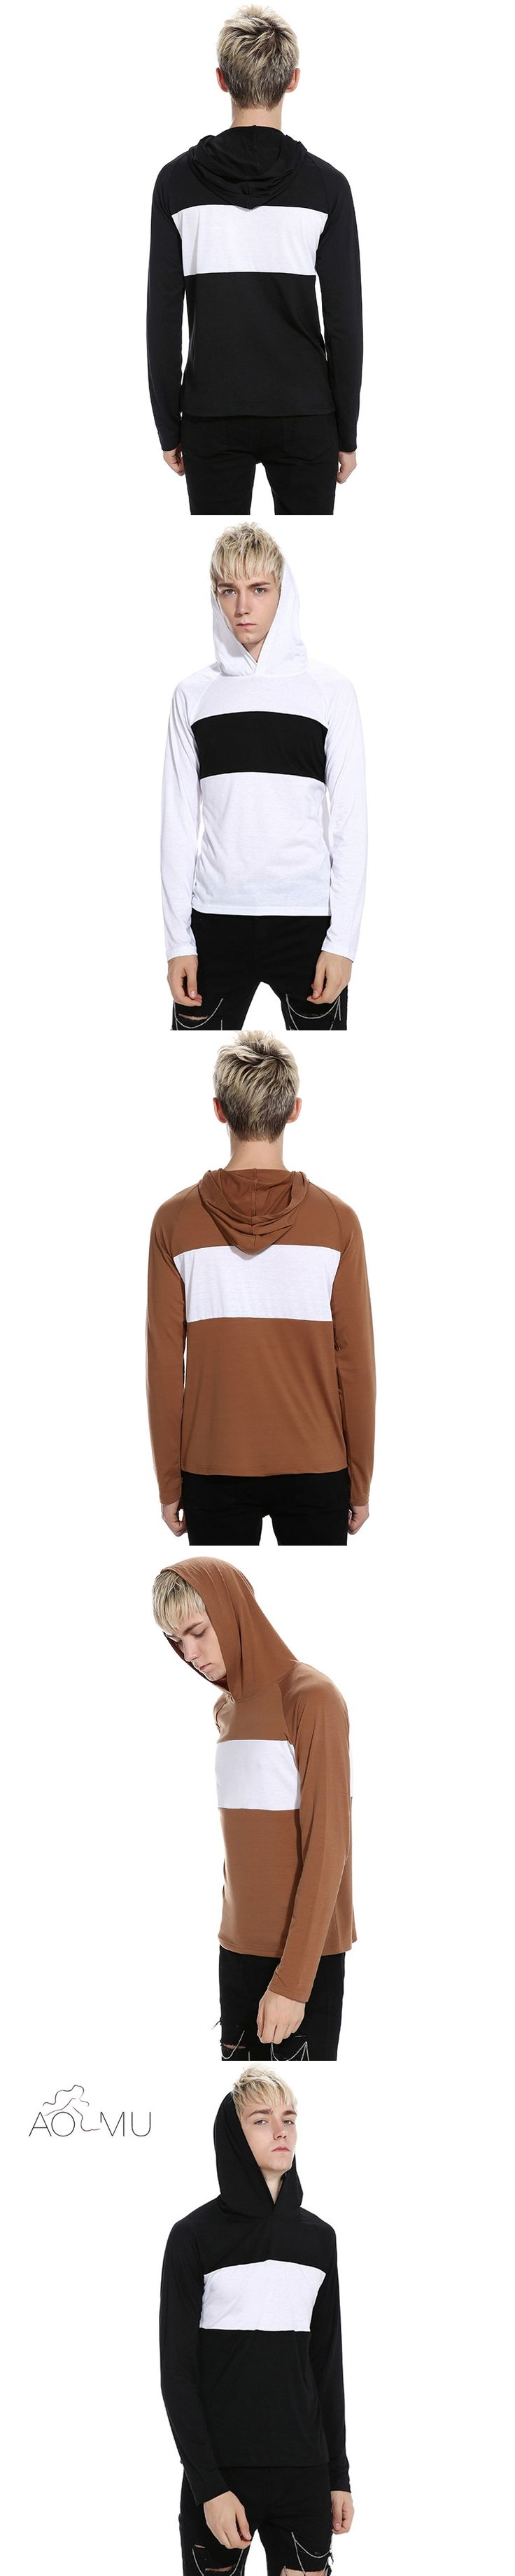 AOMU Mens Loose Cotton Hooded Hoodies Golds Gyms Clothing Workout Slim Fit Sweatshirts Male Striped Tracksuit Sportswear